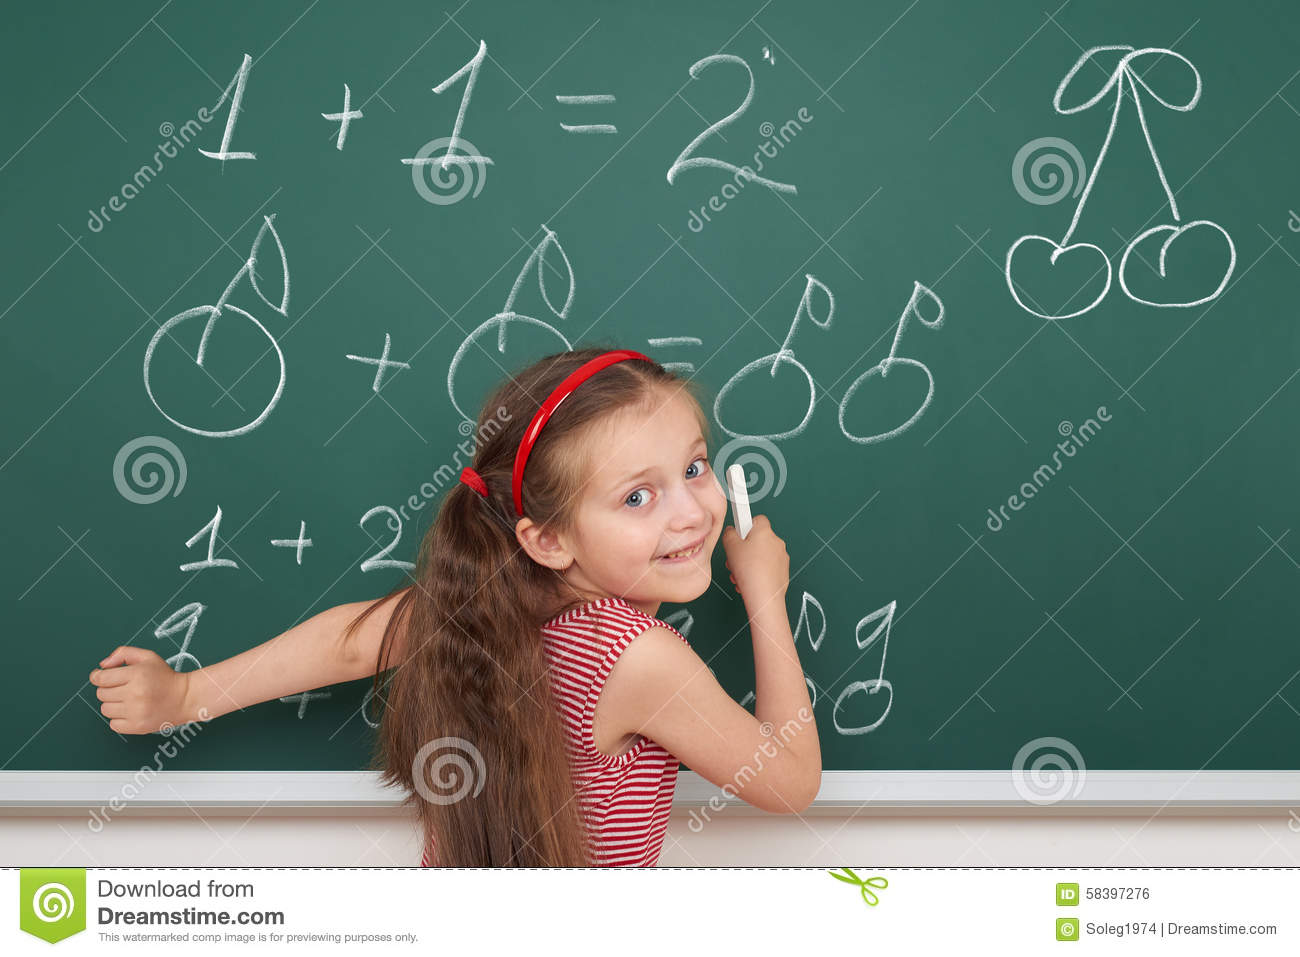 School Girl Exercise Math On Board Stock Photo - Image of cherry ...